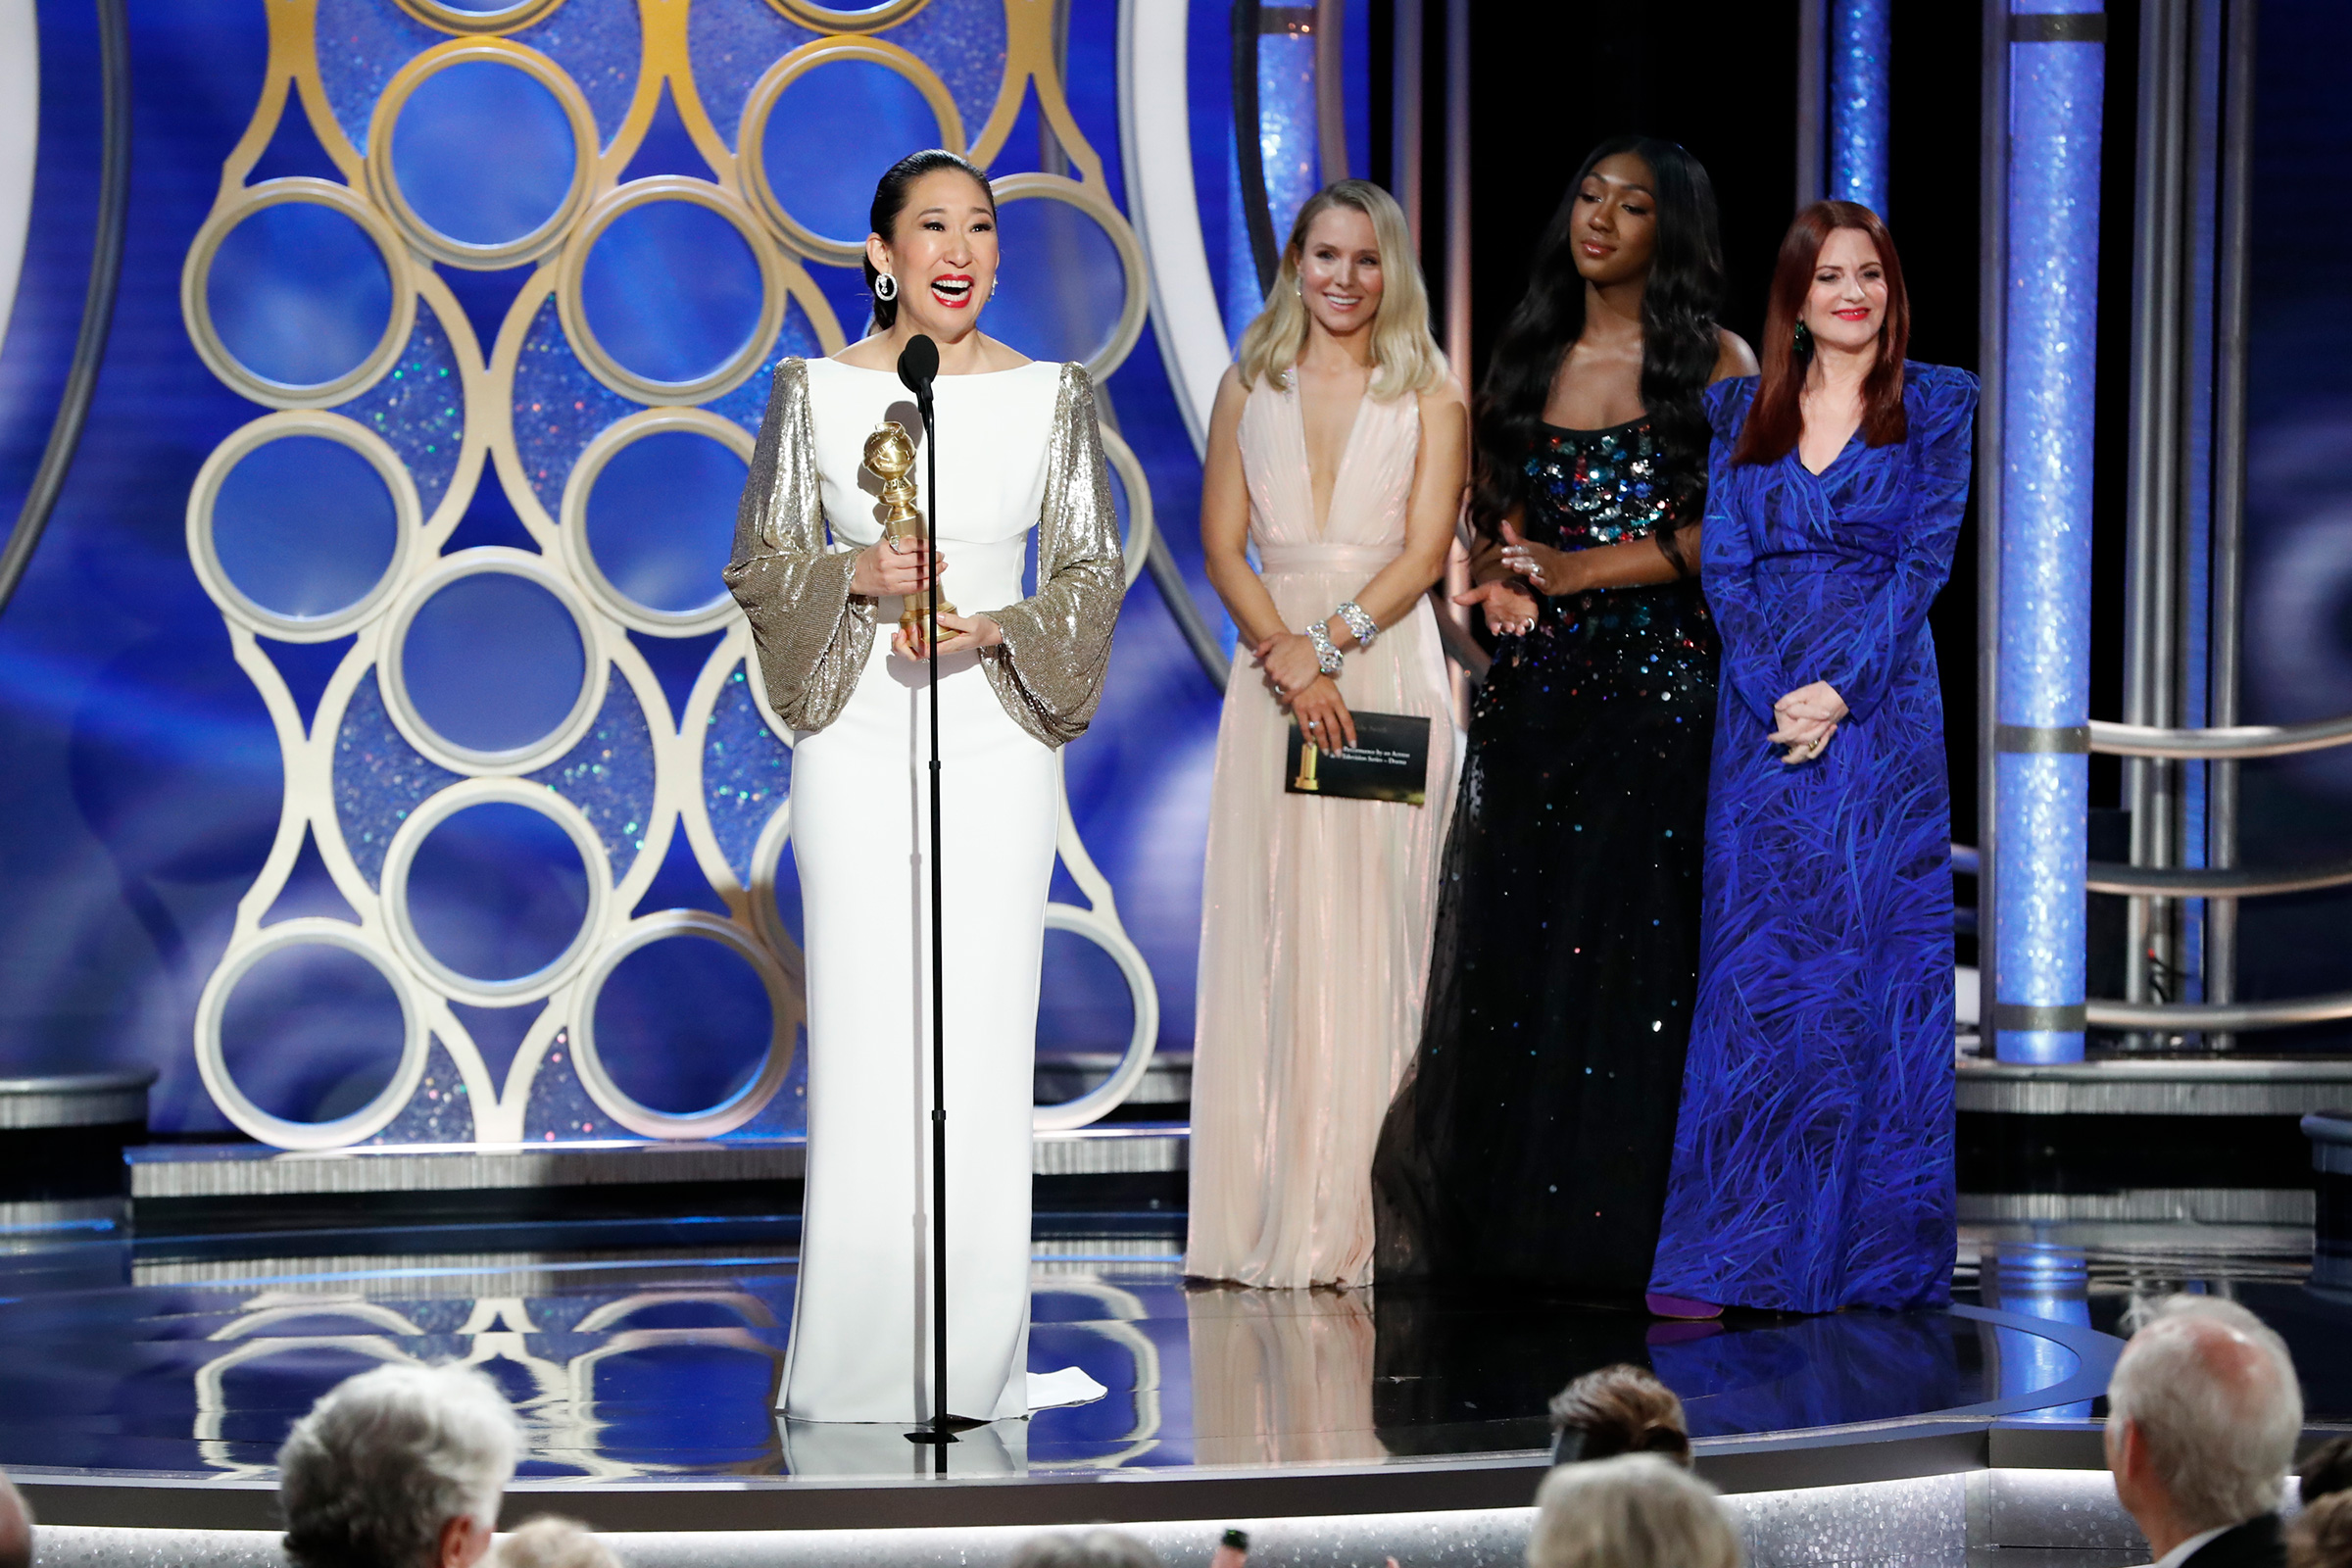 Sandra Oh accepts the Best Performance by an Actress in a Television Series Drama award during the 76th Annual Golden Globe Awards on Jan. 6, 2019.